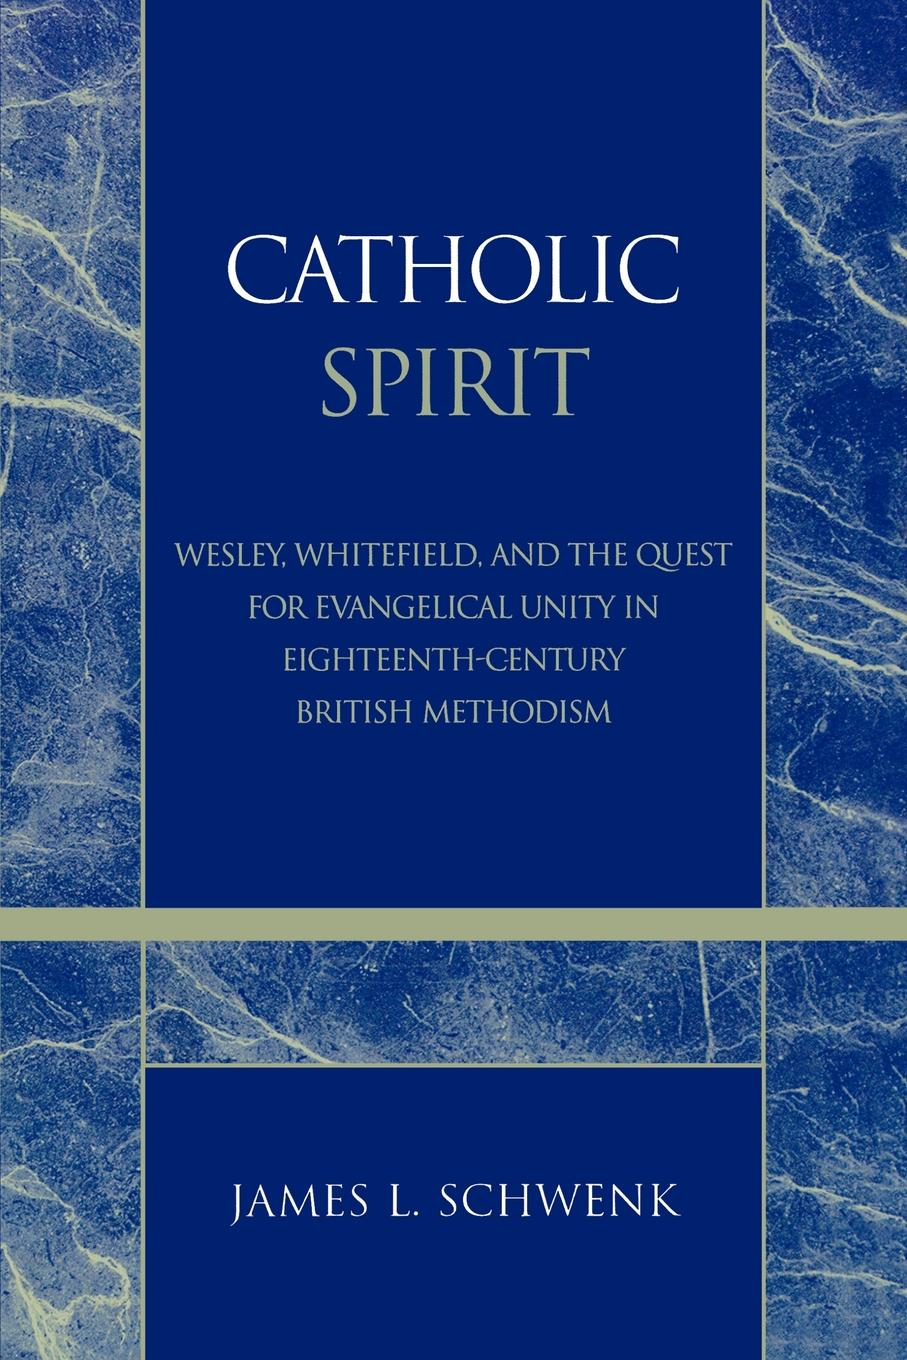 Catholic Spirit